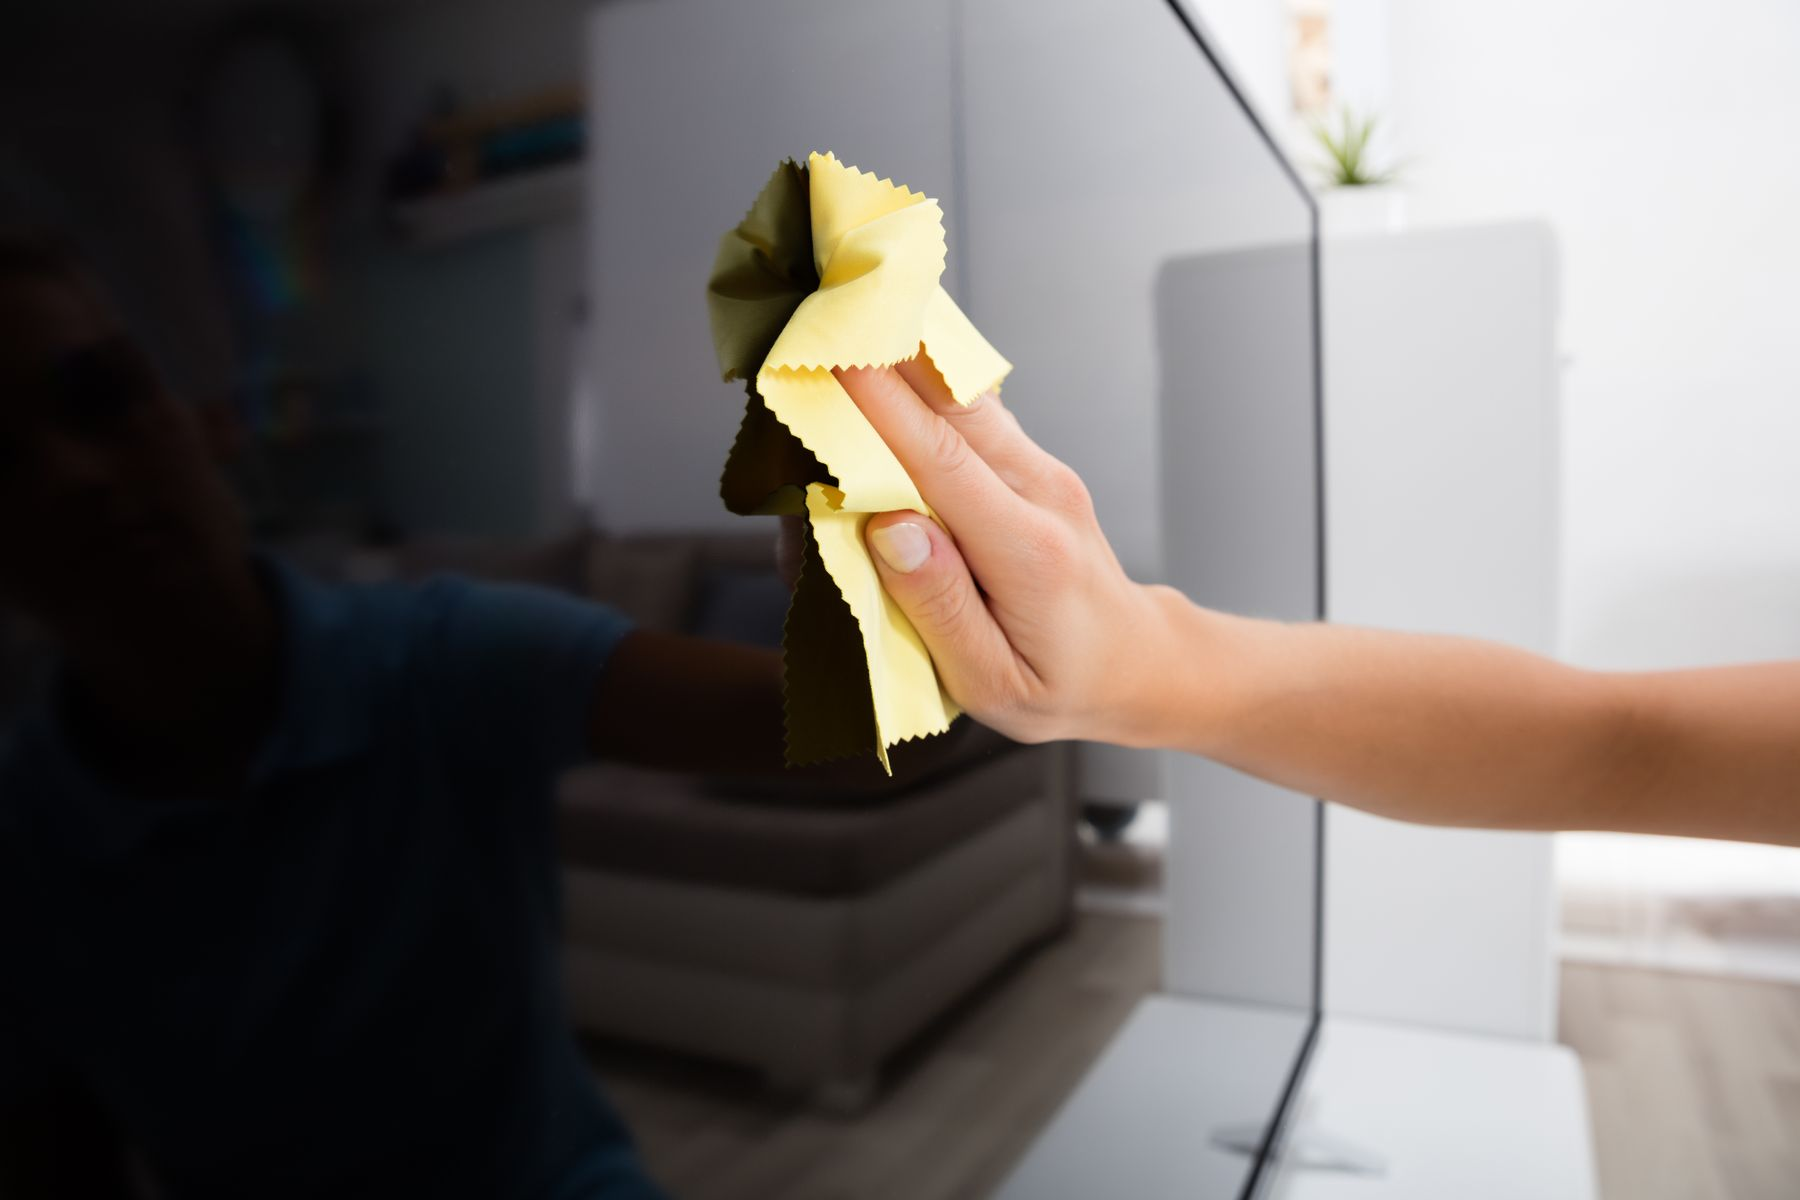 hand using yellow cloth to clean tv screen